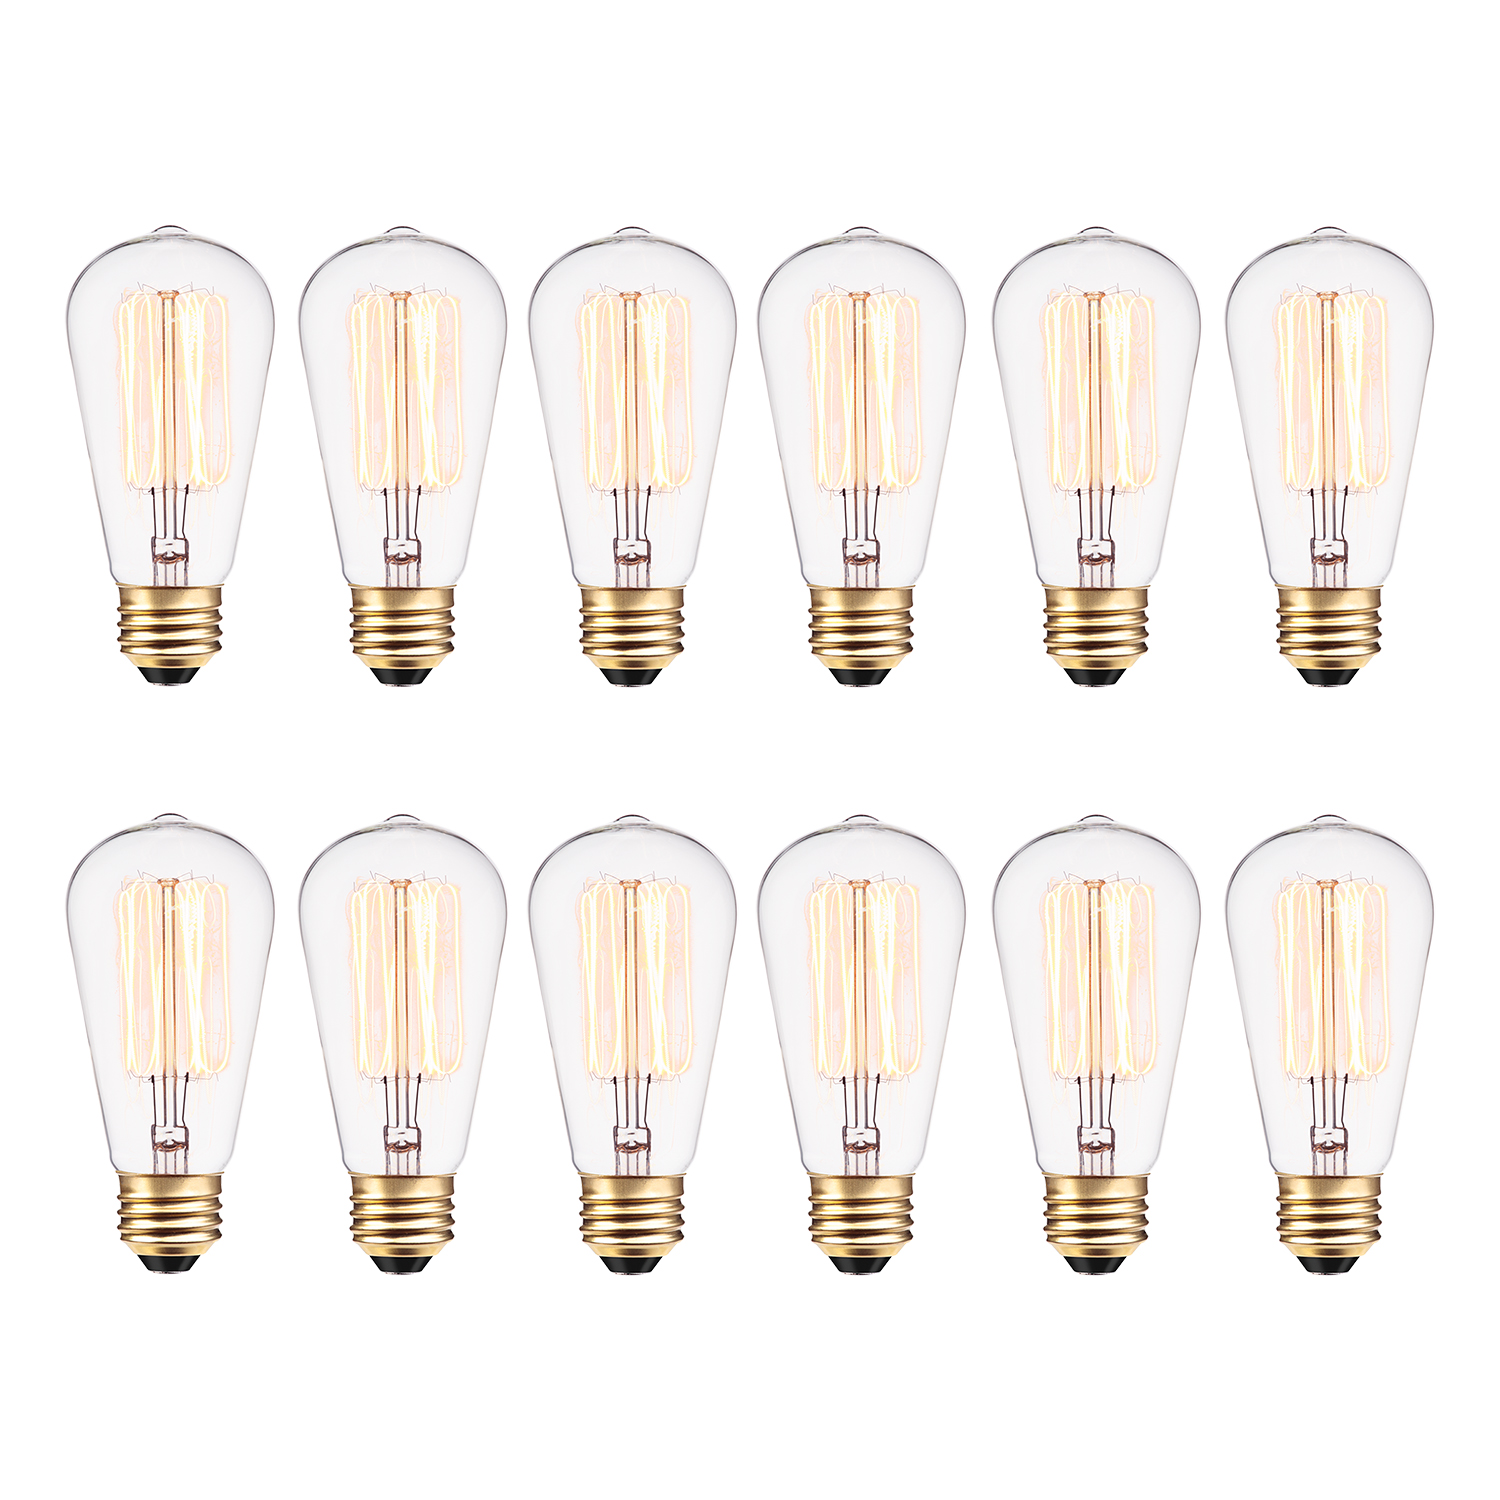 Globe Electric 40W Vintage Edison S60 Squirrel Cage Incandescent Filament Light Bulb (12-Pack), 313242